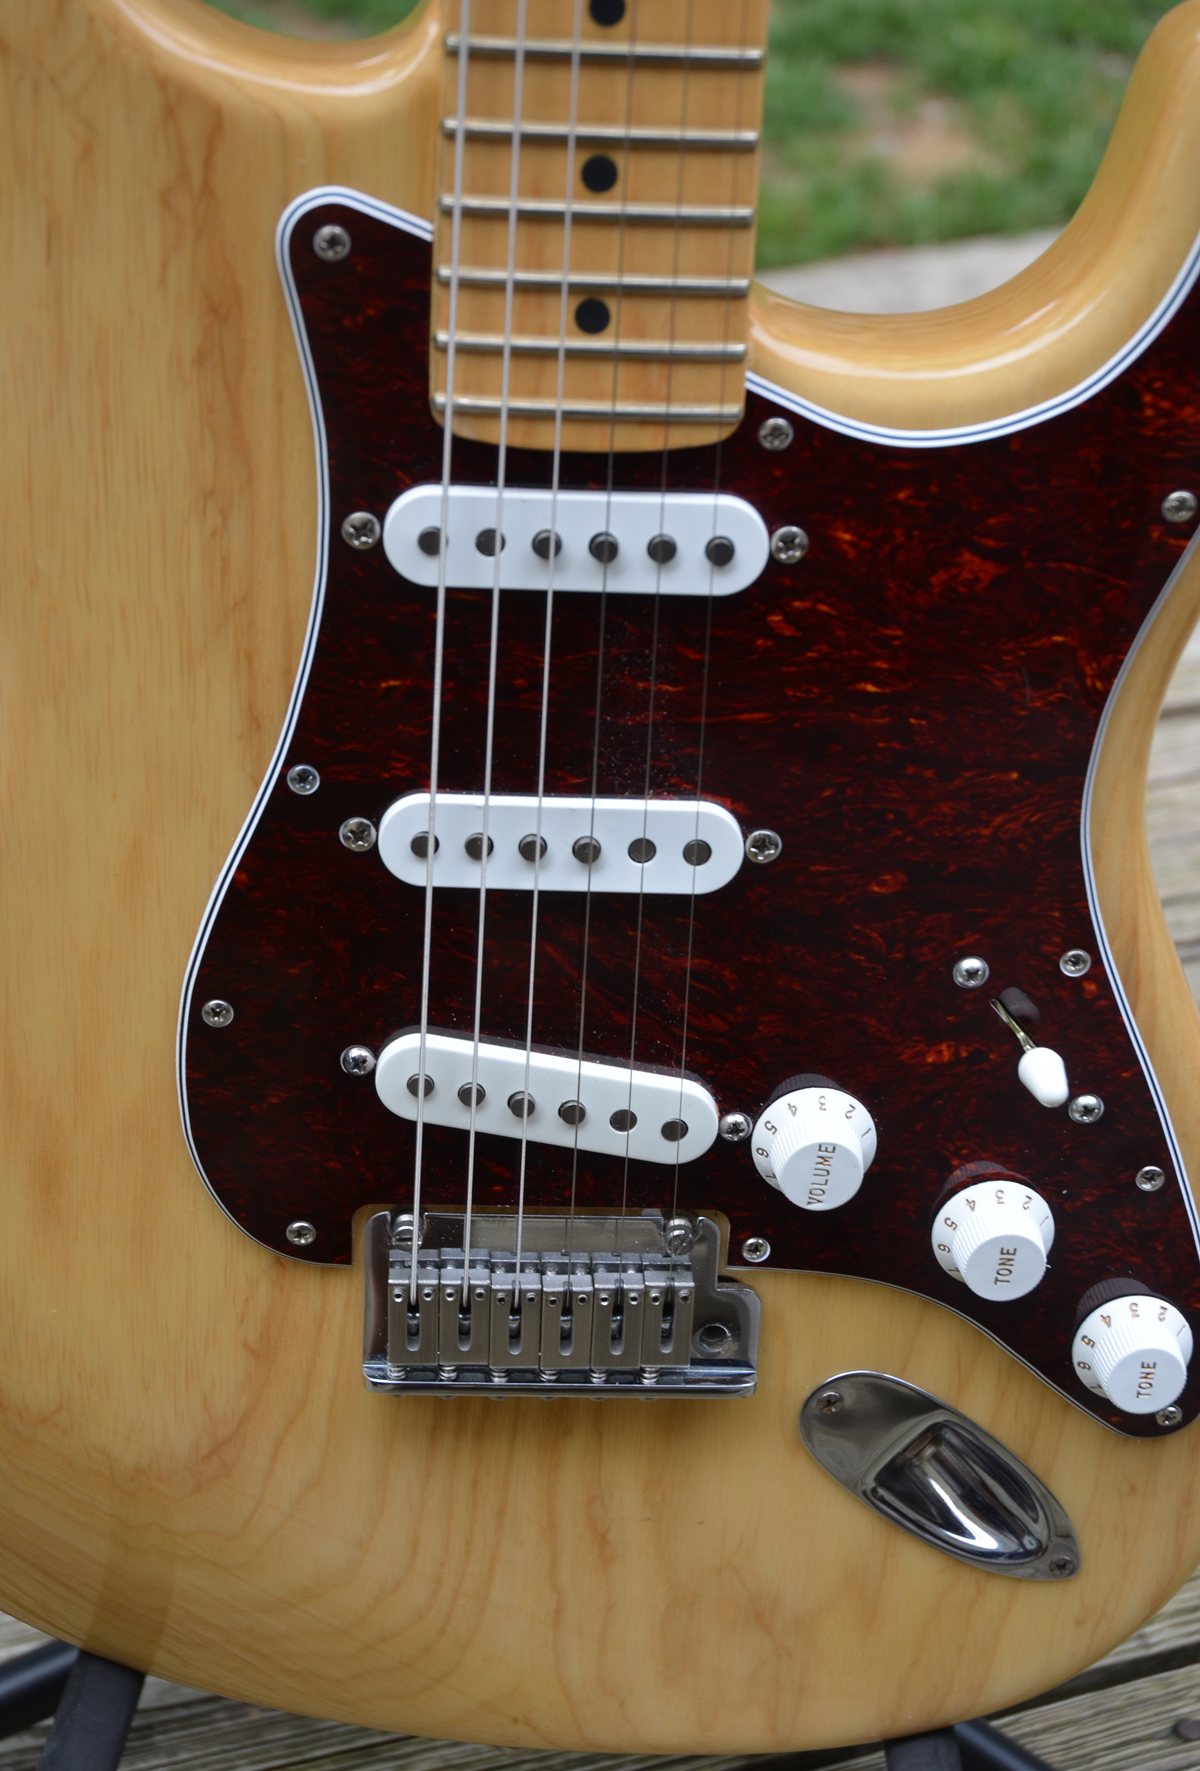 2002 Fender American Stratocaster | ChasingGuitars